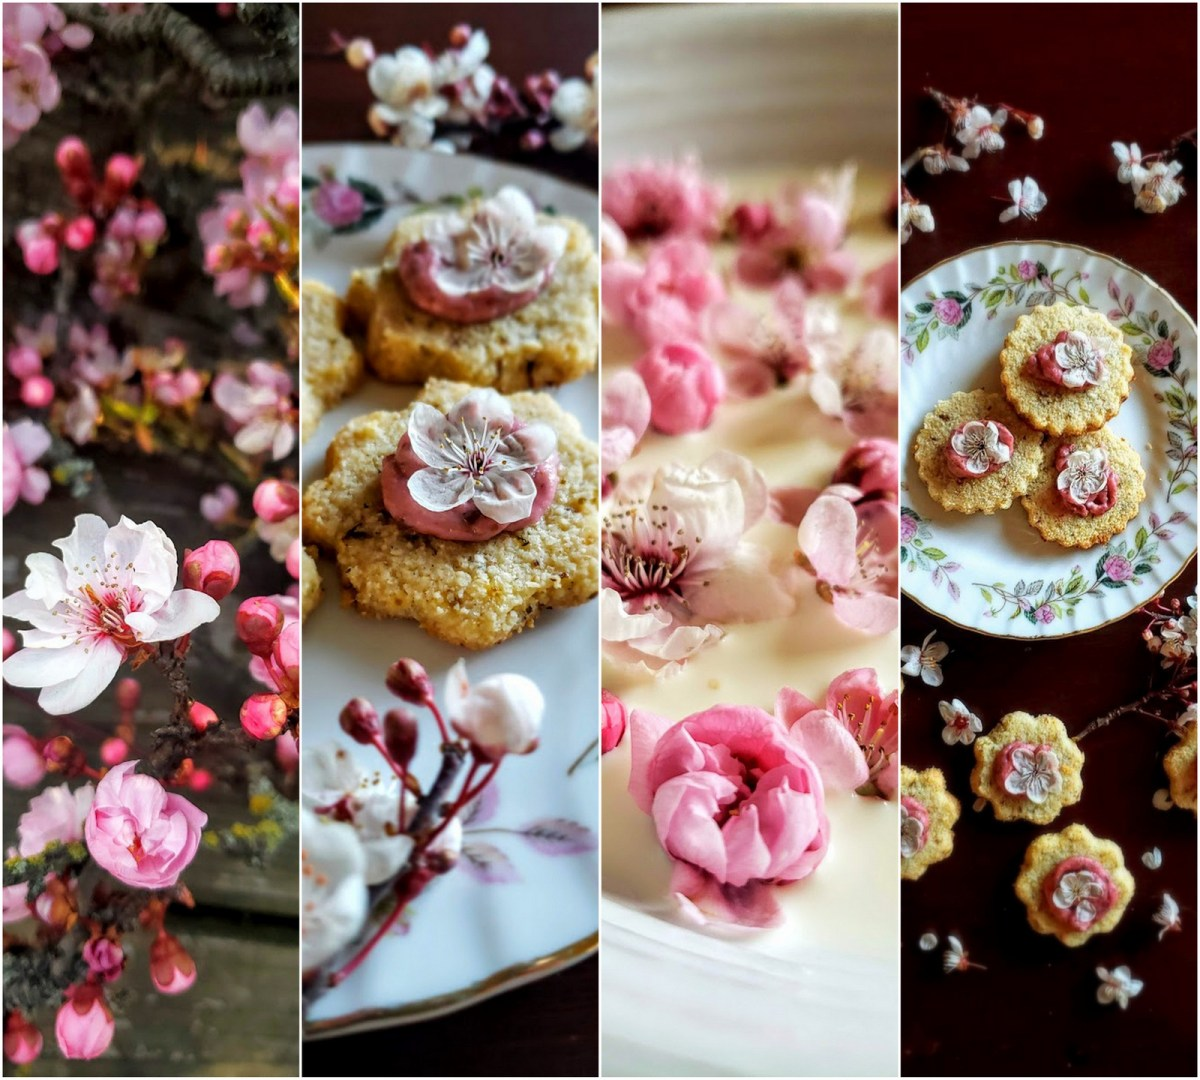 Foraging & Cooking with Ornamental Purple Plum Blossom: Spring Floral Confections!